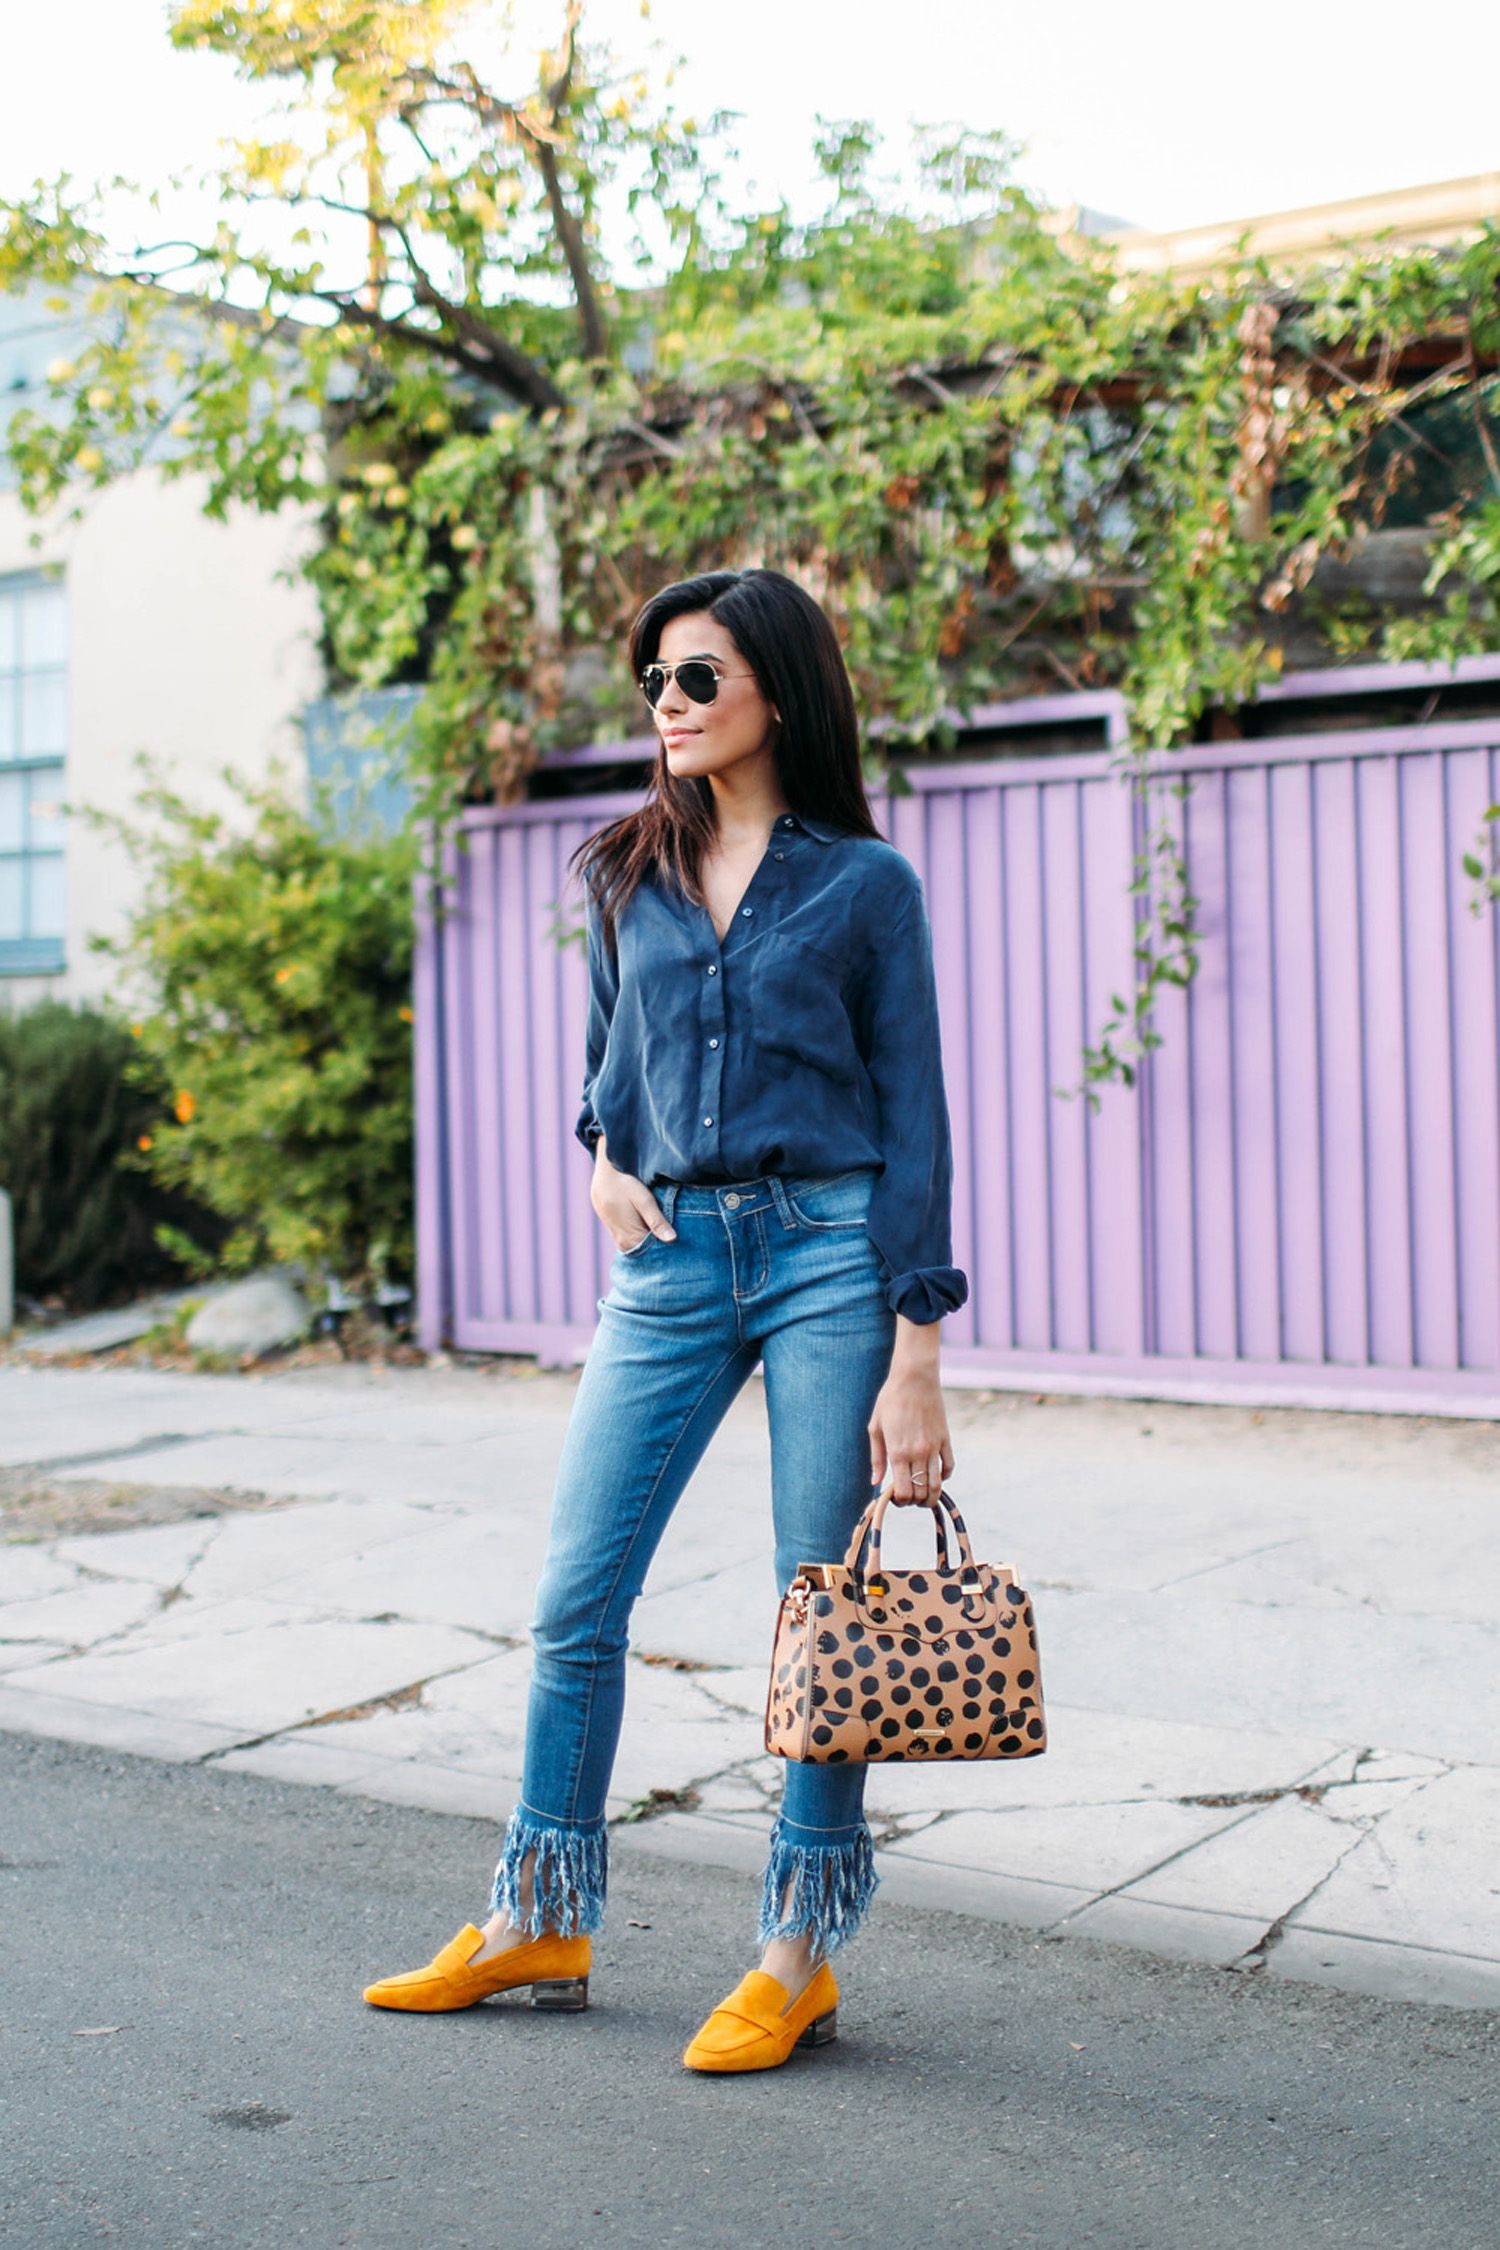 "<p>""This is my typical, everyday look in the office: comfy shoes, denim, and a loose blouse. It's perfect for any occasion and looks timeless. Also, the fringe of the denim and the bright yellow loafers give this look a little extra pizzazz.""</p>  <p><em data-redactor-tag=""em"" data-verified=""redactor"">What she's wearing: Zara blouse, Earl jeans, Topshop yellow loafers</em></p>"